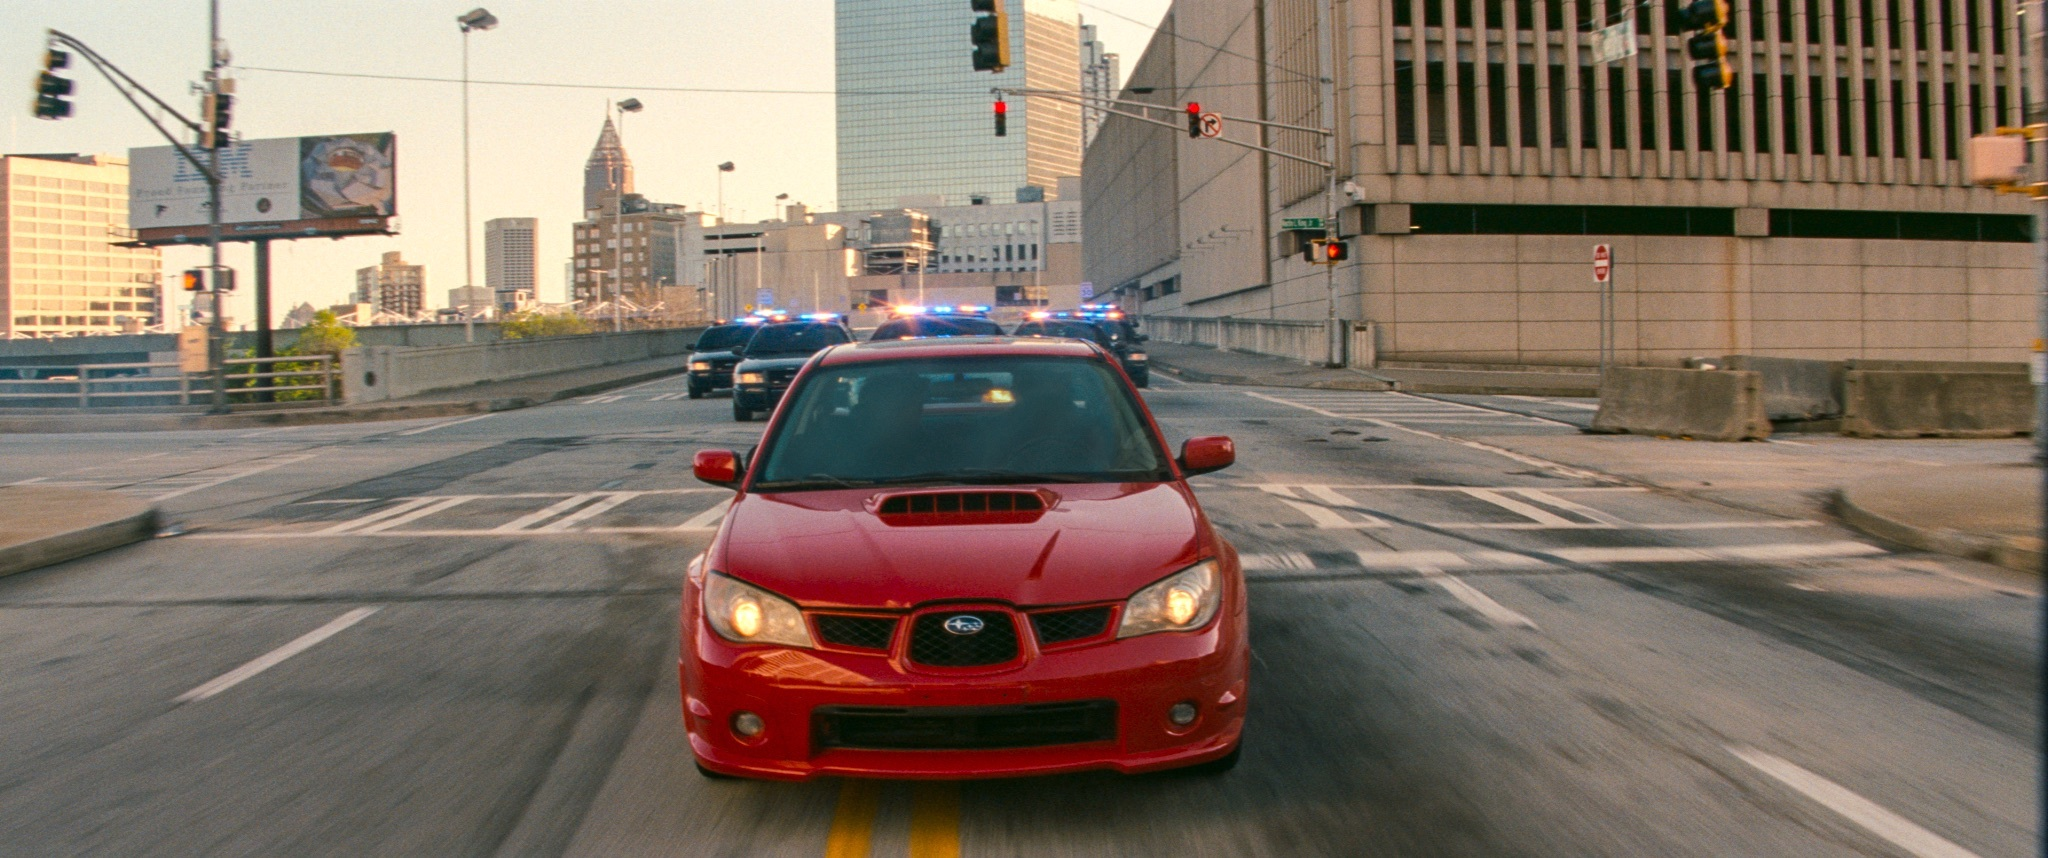 2017's Baby Driver was an instant classic car chase movie